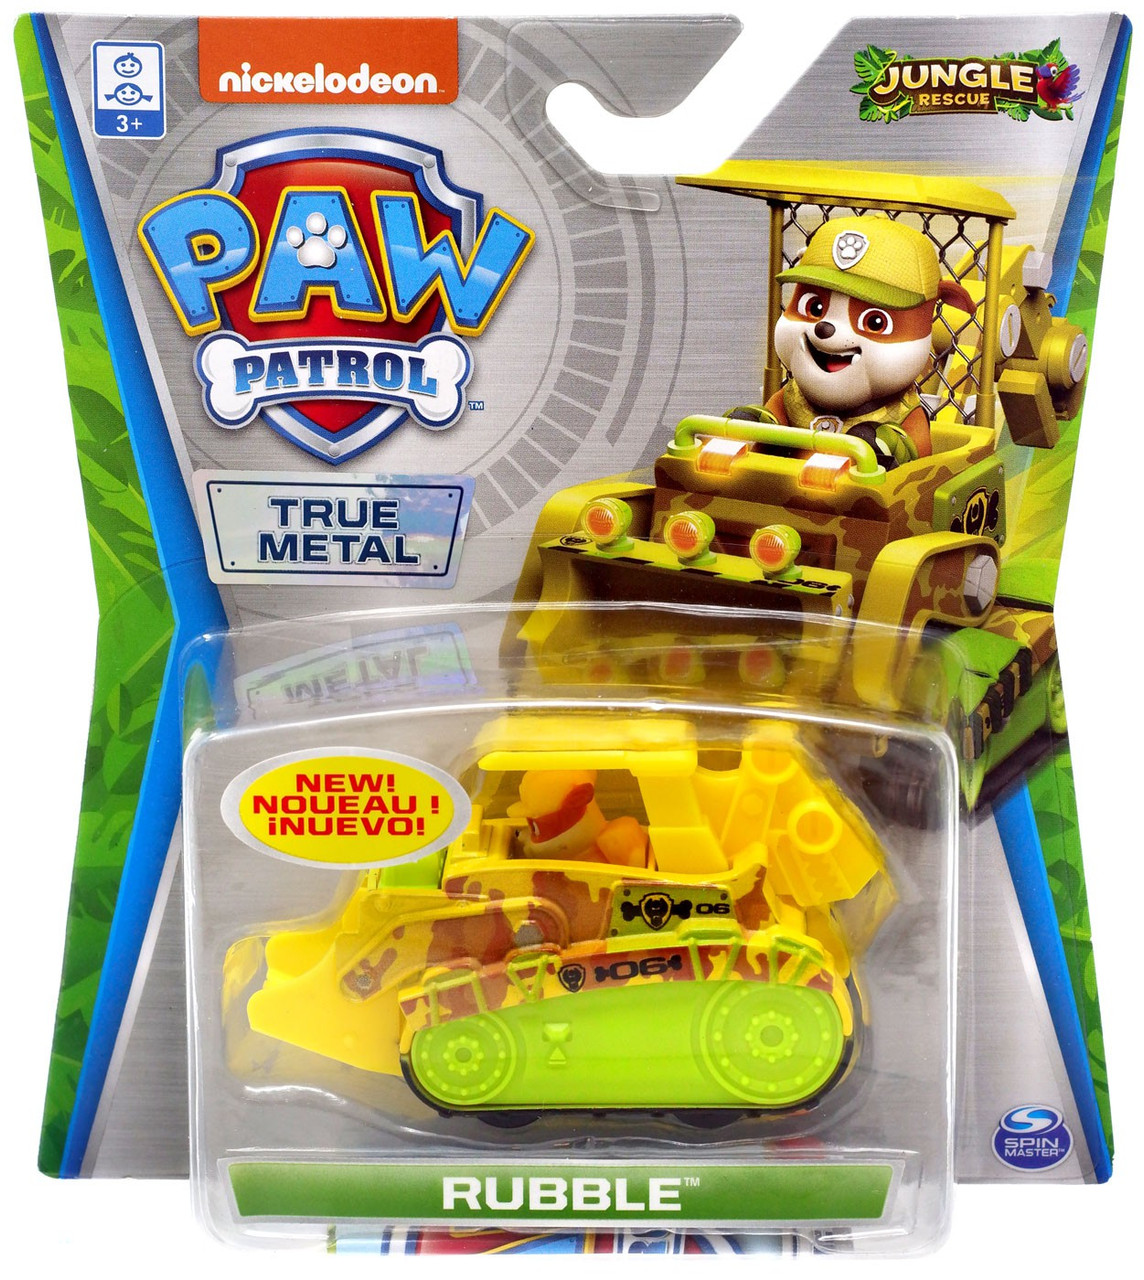 Paw Patrol Jungle Rescue True Metal Rubble Diecast Car Jungle Rescue Spin Master Toywiz